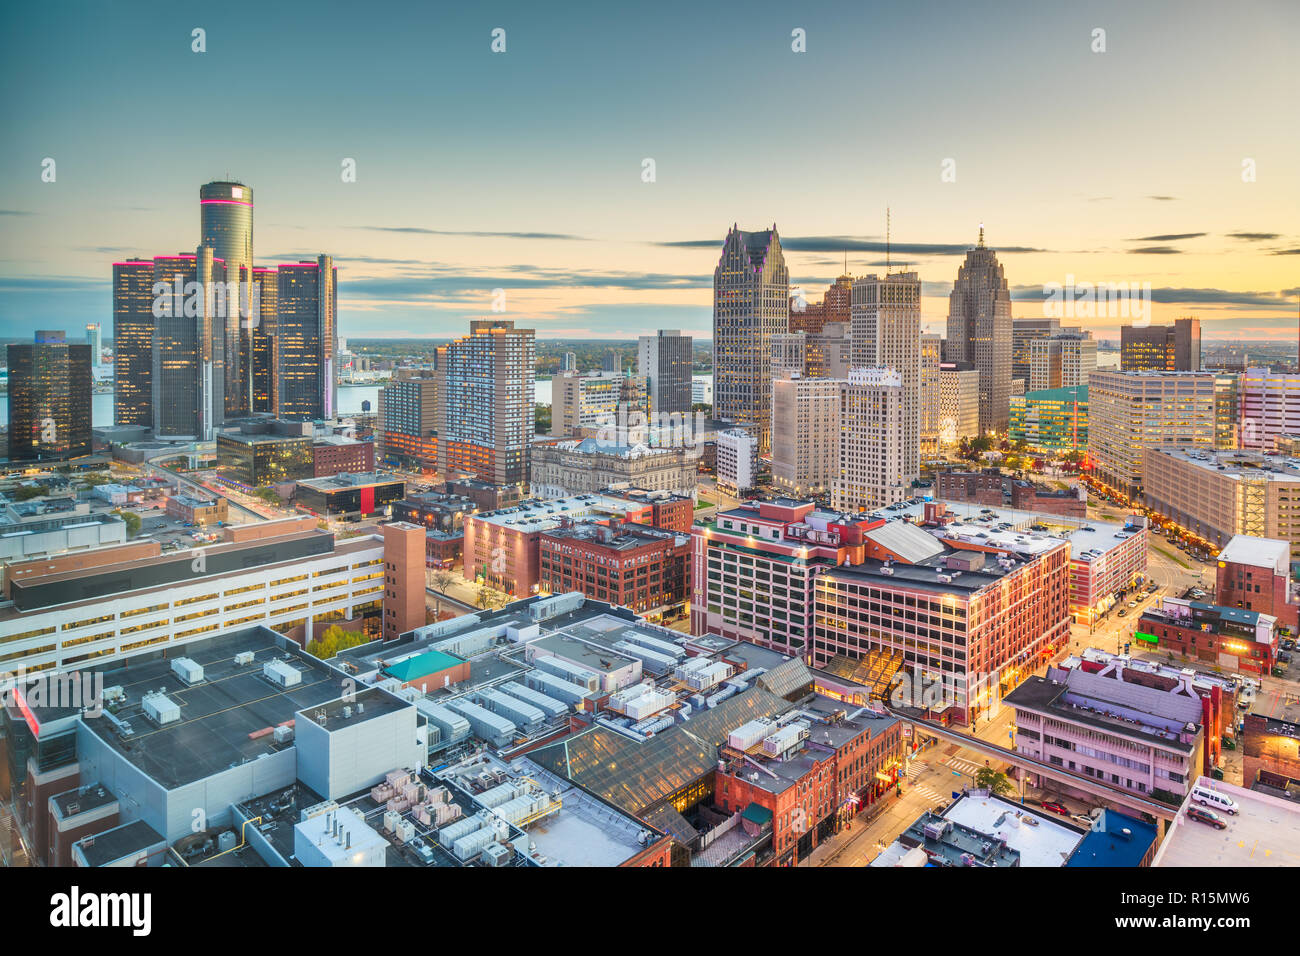 detroit michigan usa downtown skyline from above at dusk stock photo alamy https www alamy com detroit michigan usa downtown skyline from above at dusk image224475586 html